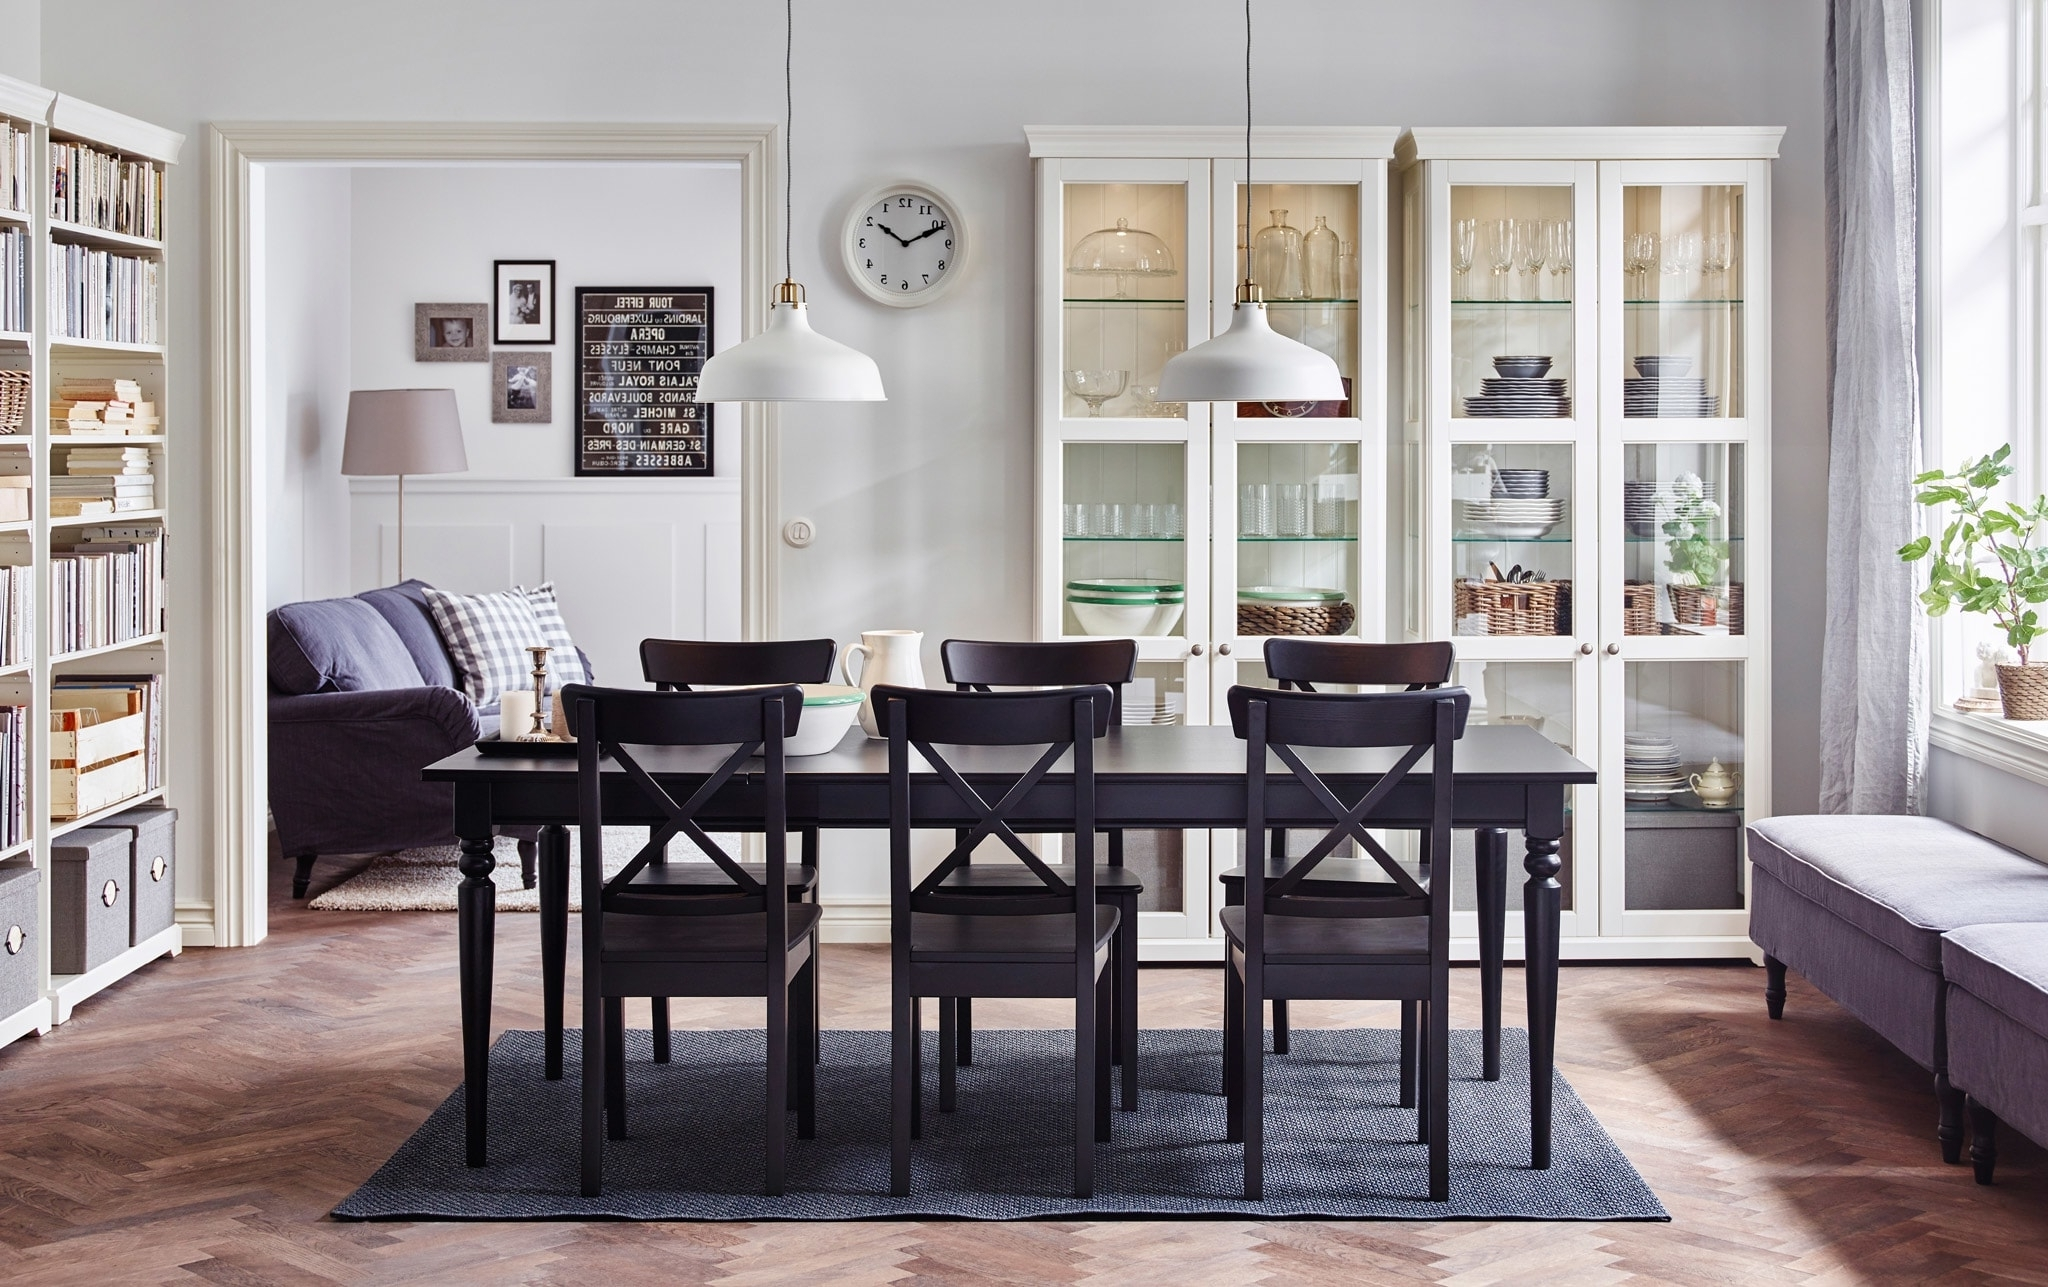 Ikea Round Dining Tables Set Inside Most Up To Date Dining Room Furniture & Ideas (View 10 of 25)